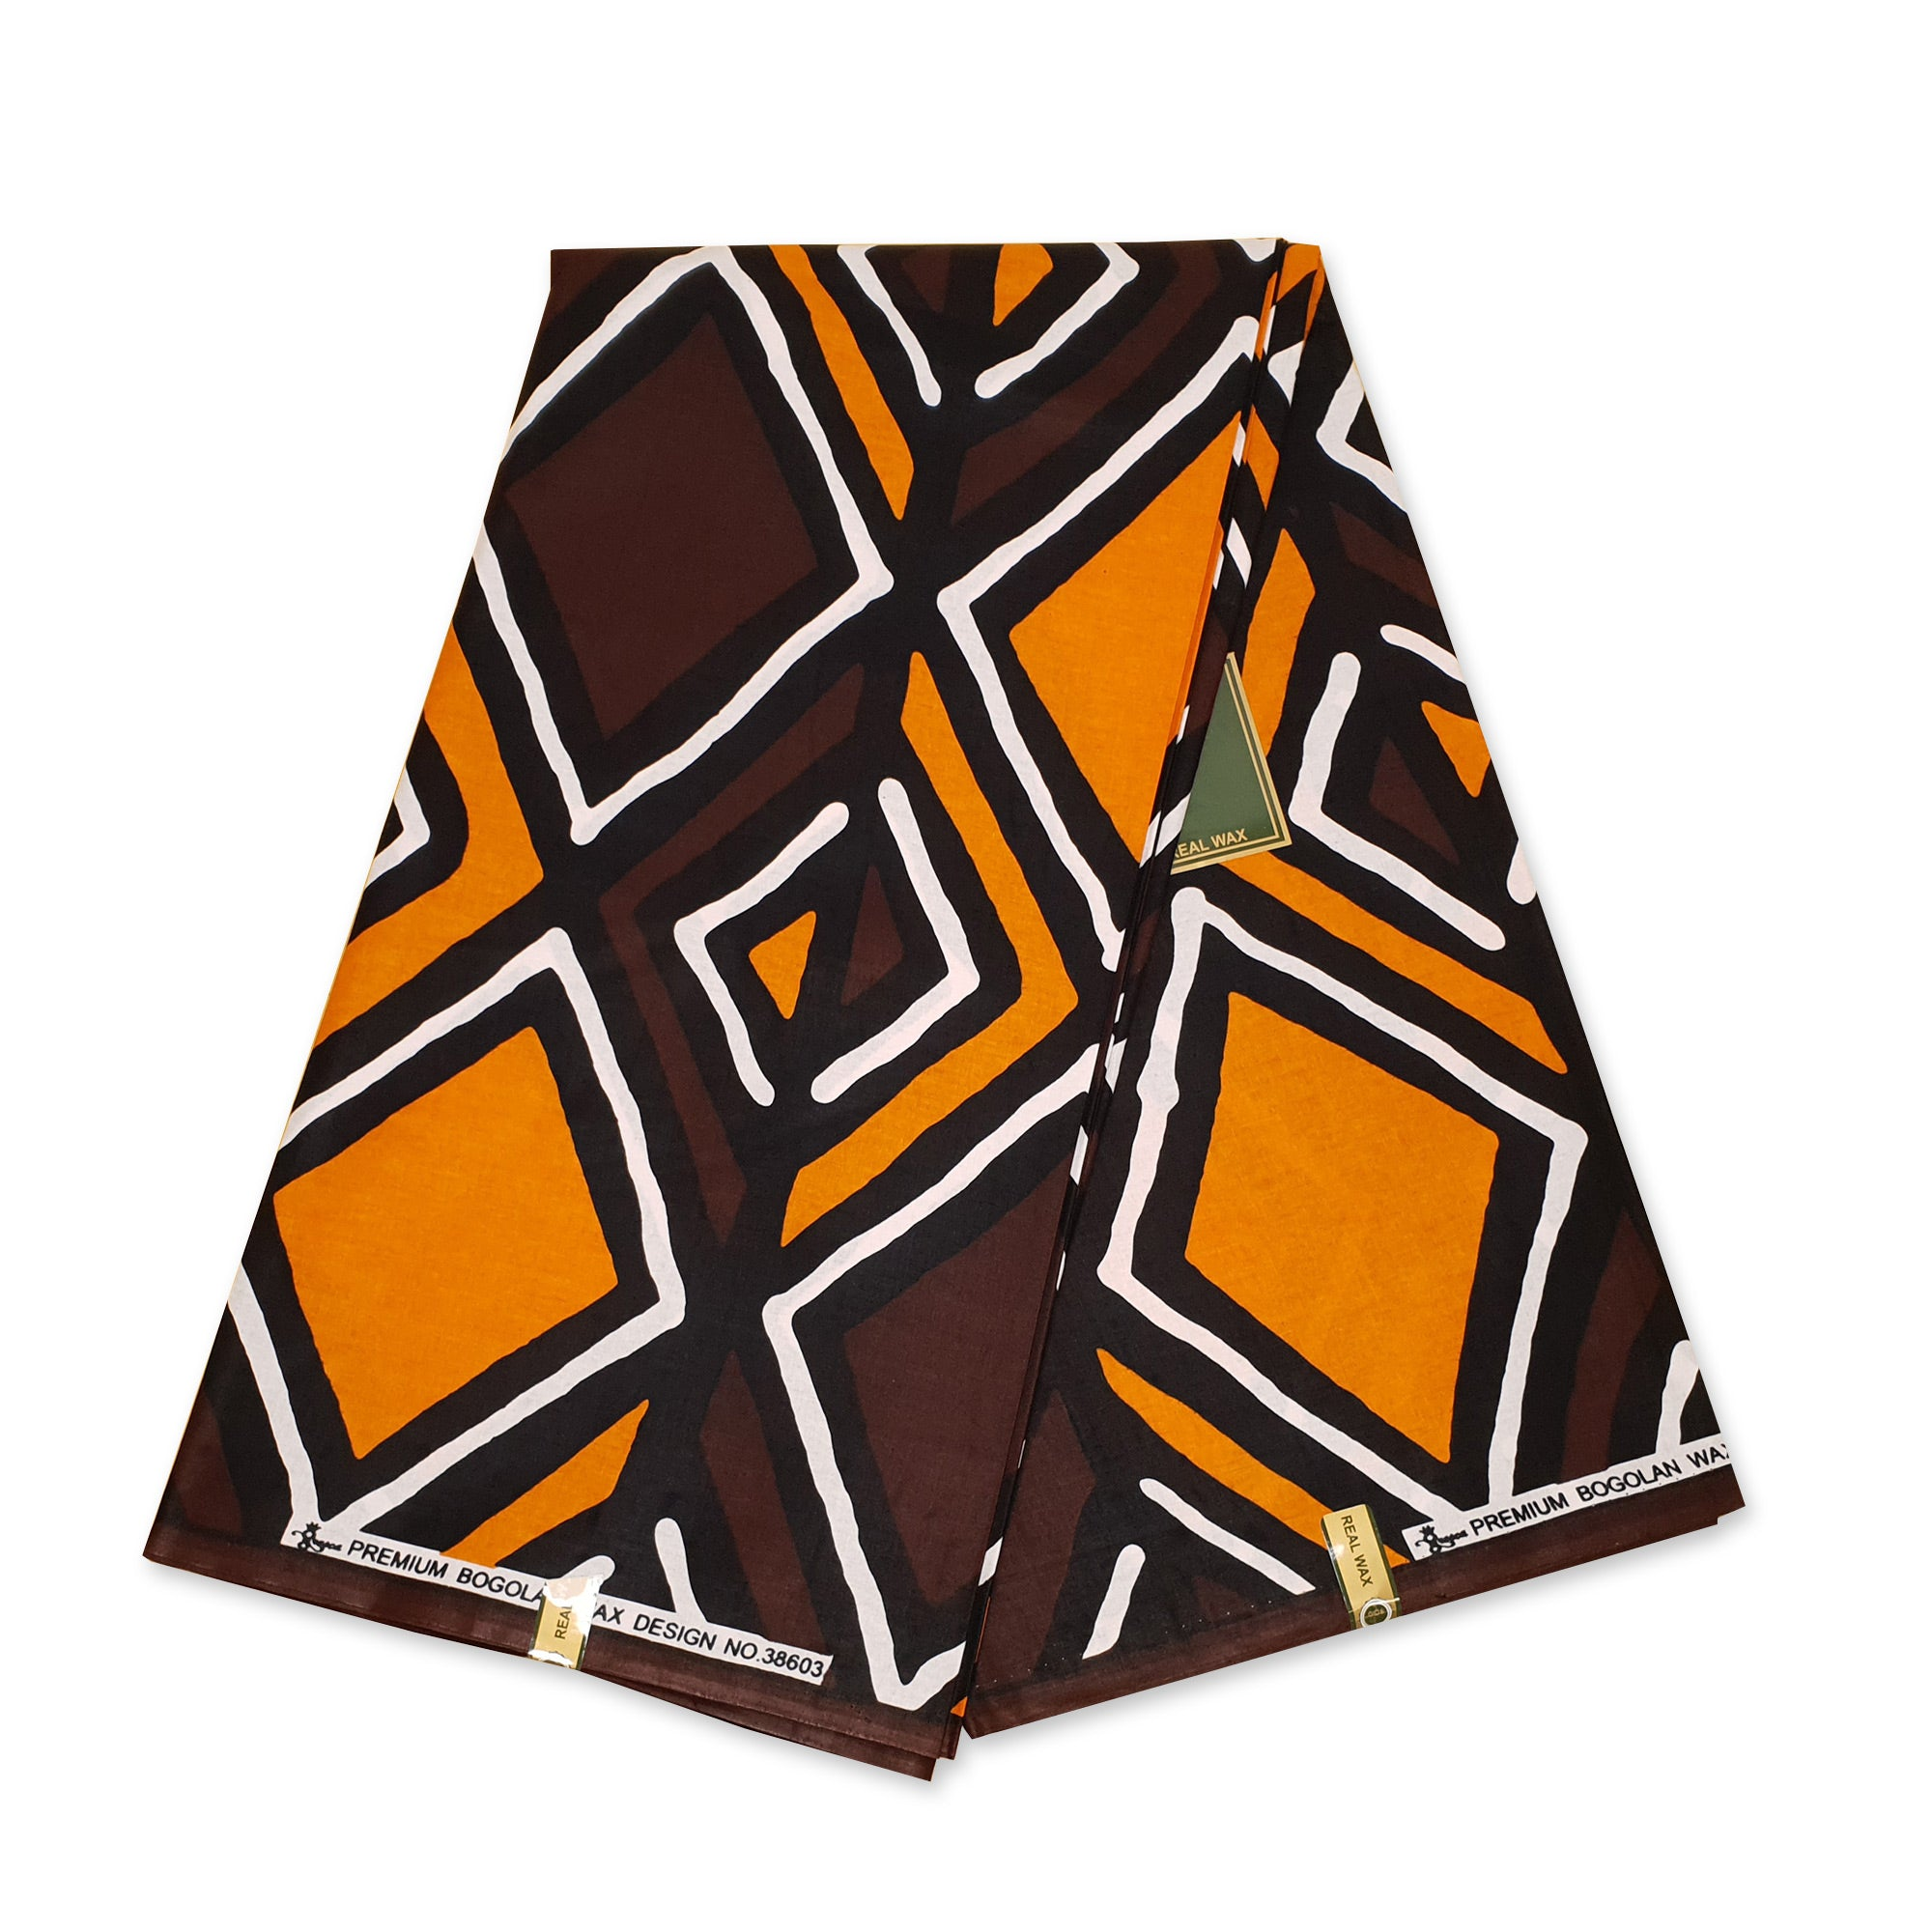 African Beige / Orange-Brown BOGOLAN / MUD CLOTH print fabric / cloth (Traditional Mali)